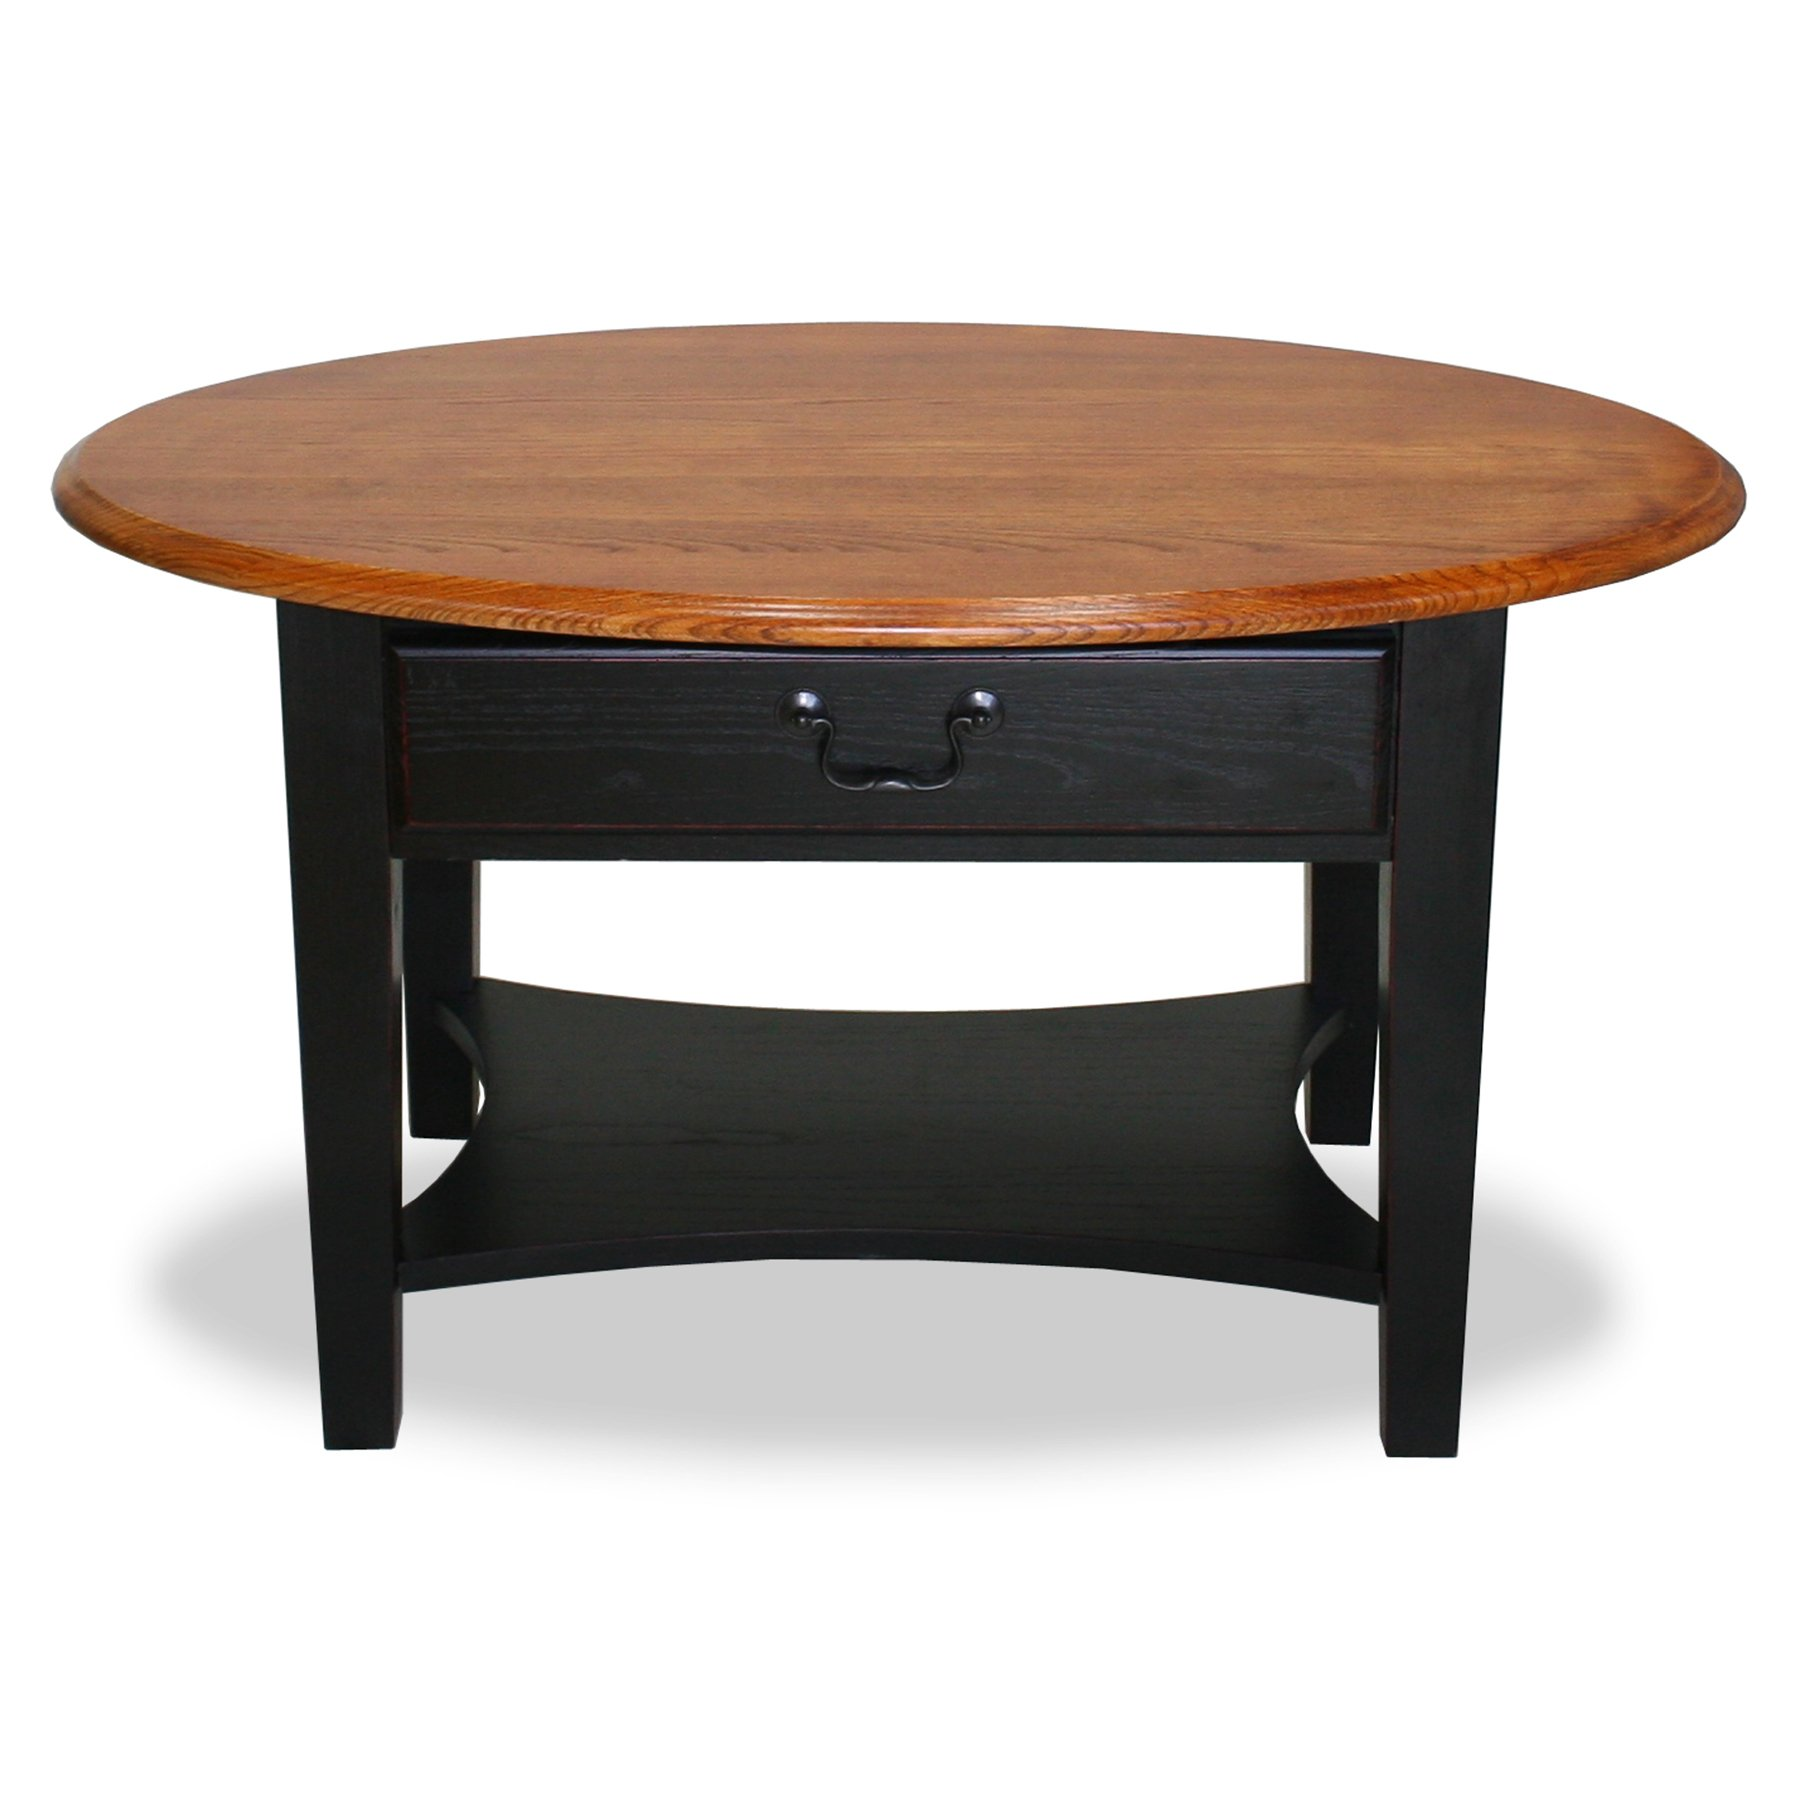 Slate Coffee Table With Drawers: Leick Oval Coffee Table - Slate Black